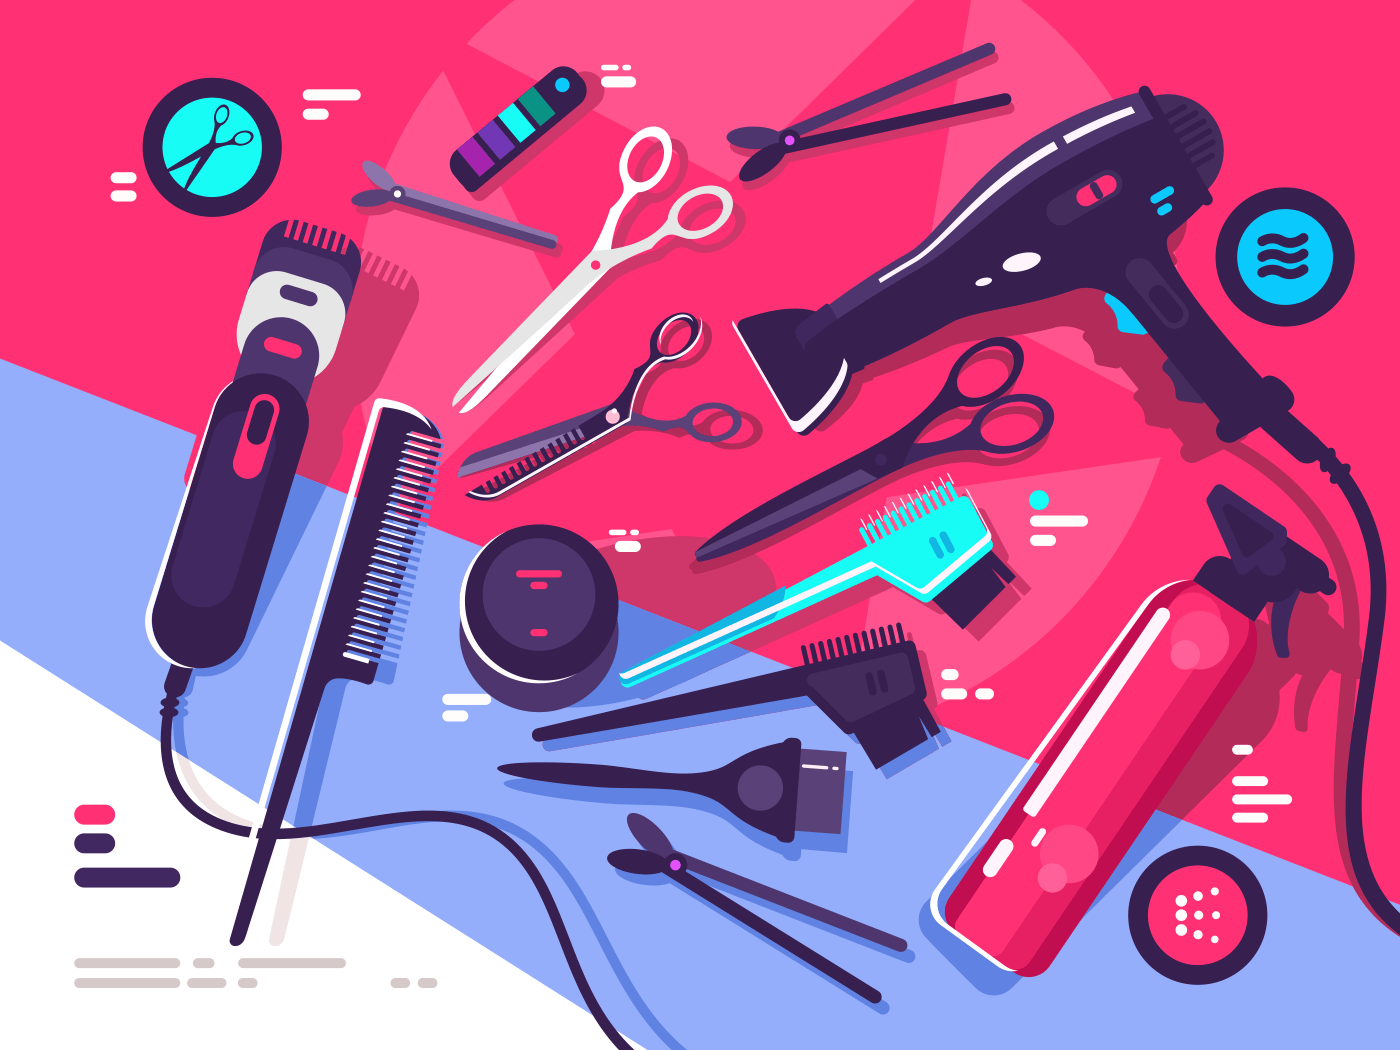 Hairdressing tools, hairbrush and hair dryer, scissors and shaving machine. Vector illustration